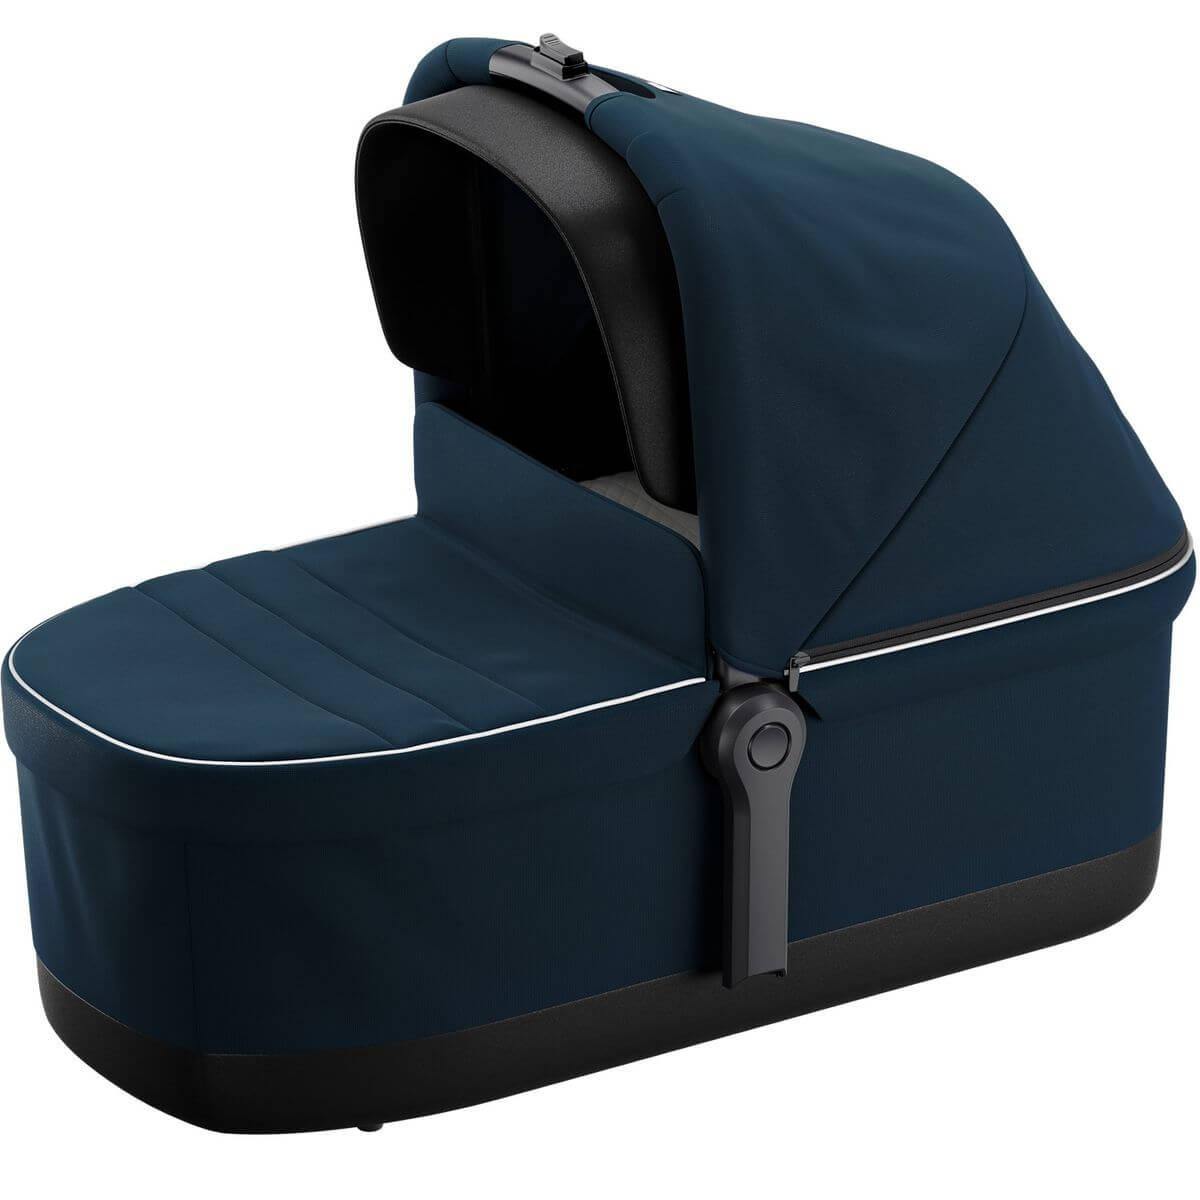 Nacelle bébé SLEEK Thule navy blue